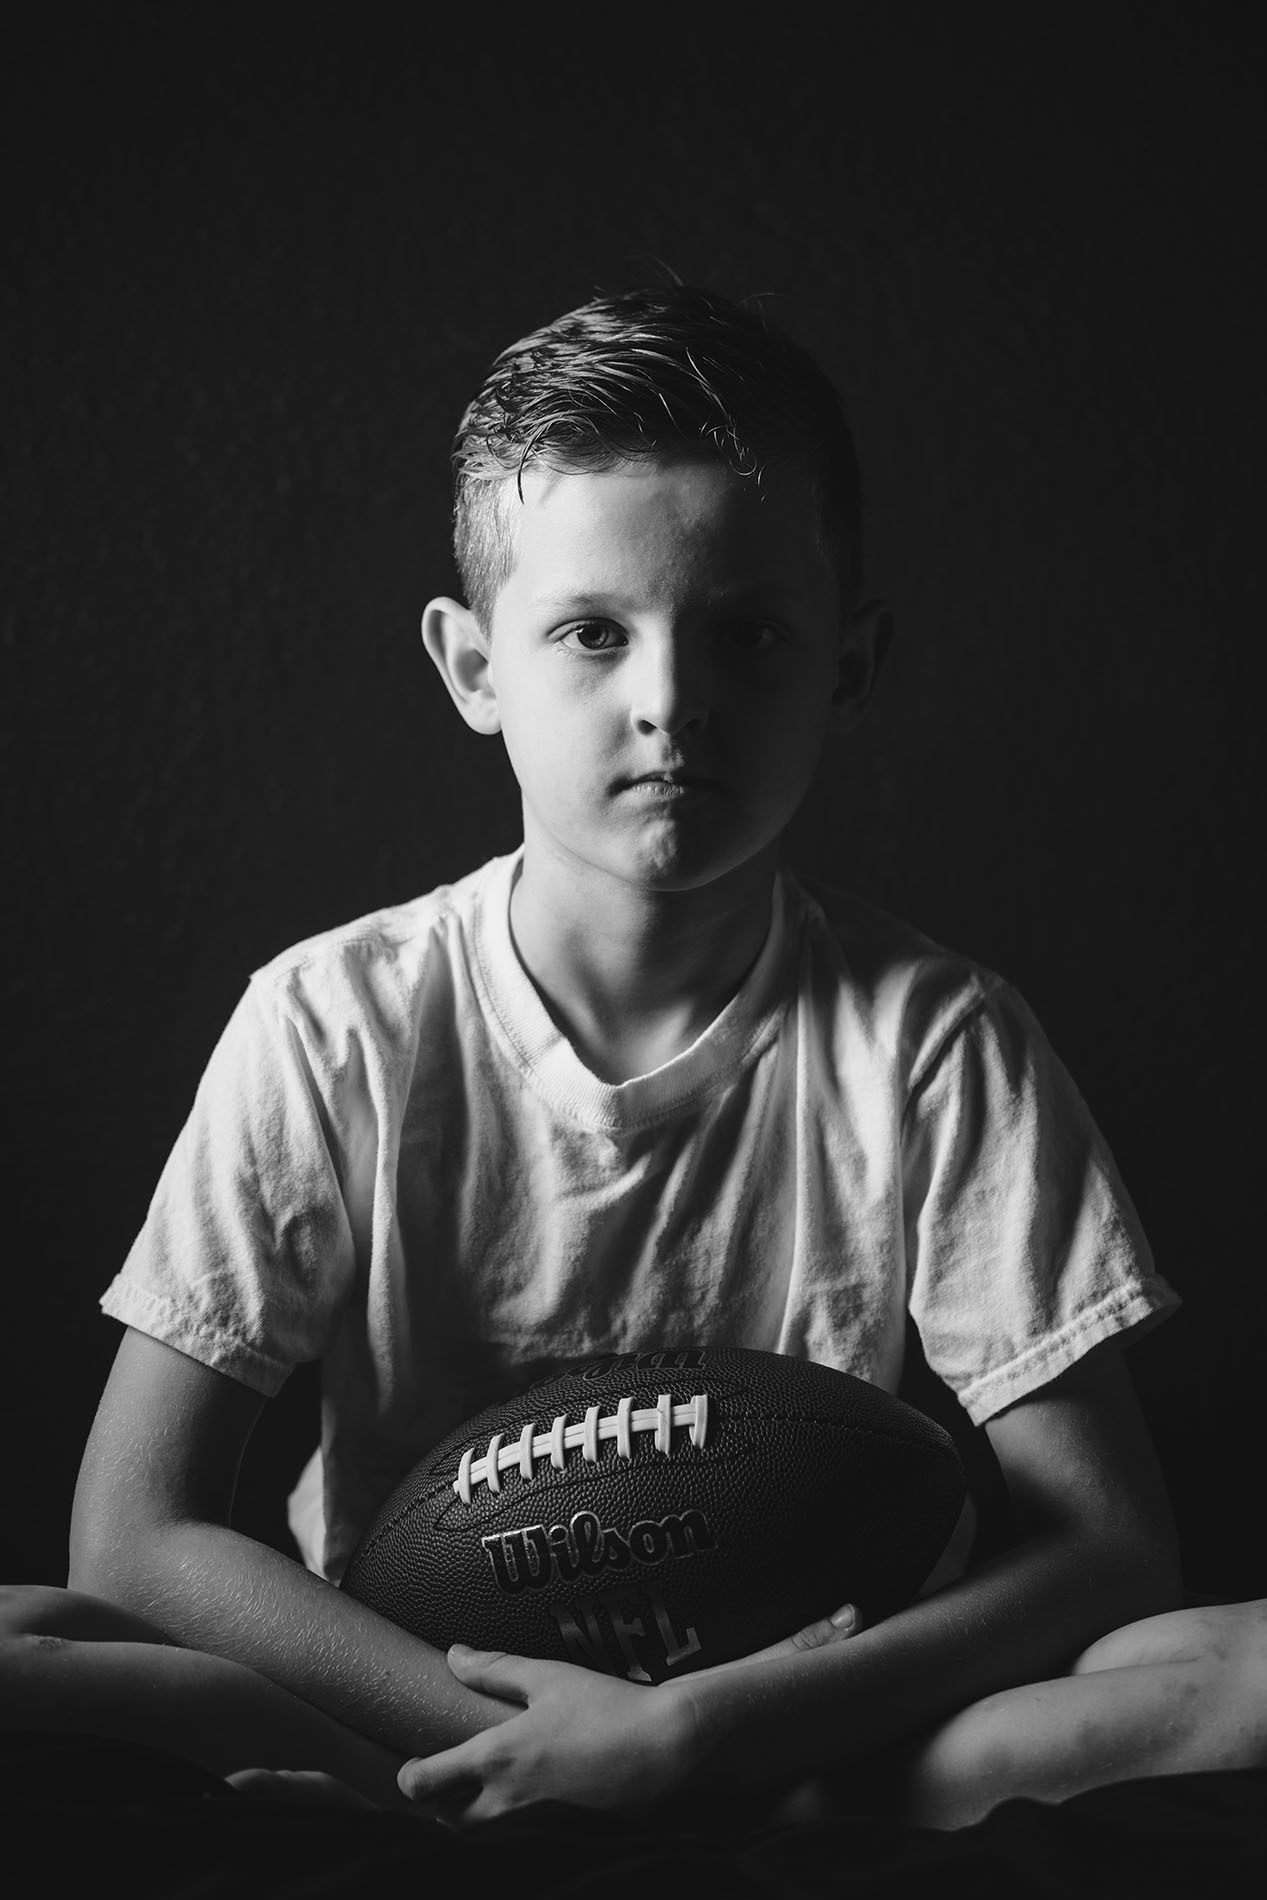 split light black and white photo of boy holding a football by April Nienhuis